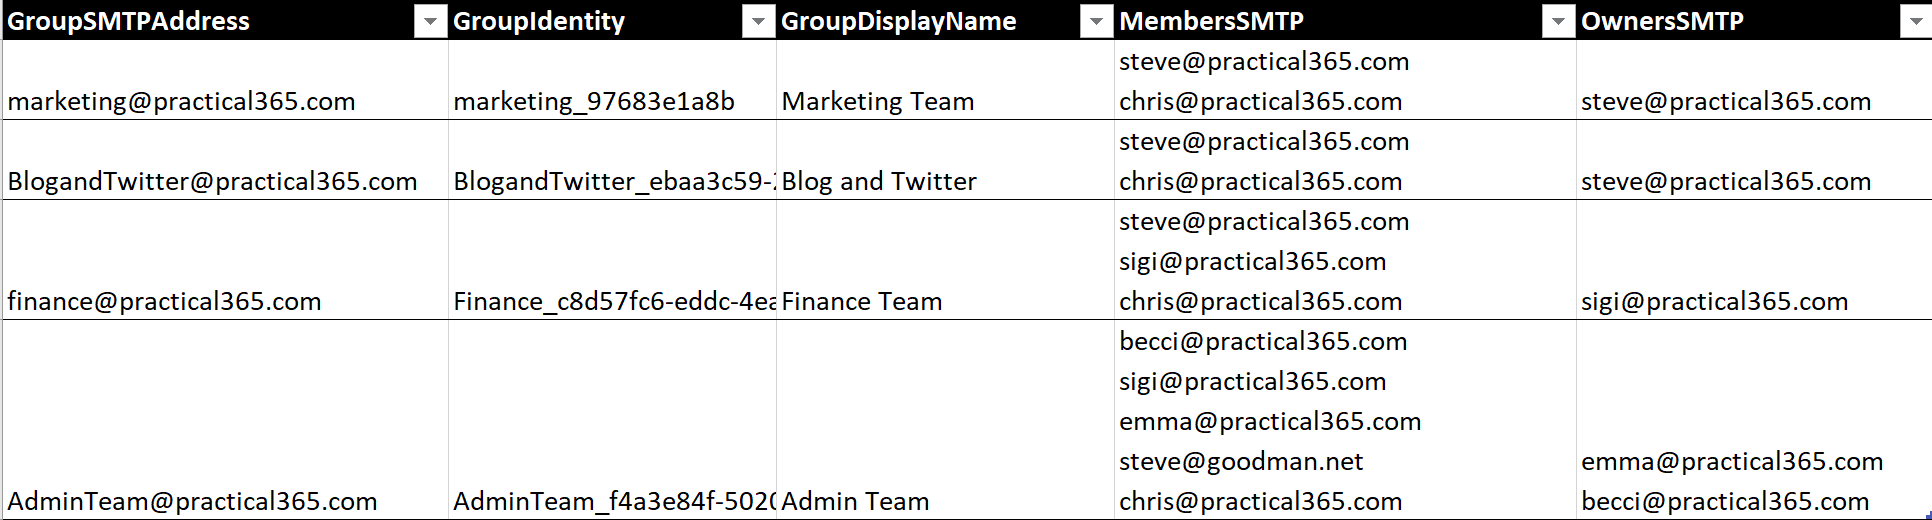 Exporting Office 365 Group membership to a CSV file